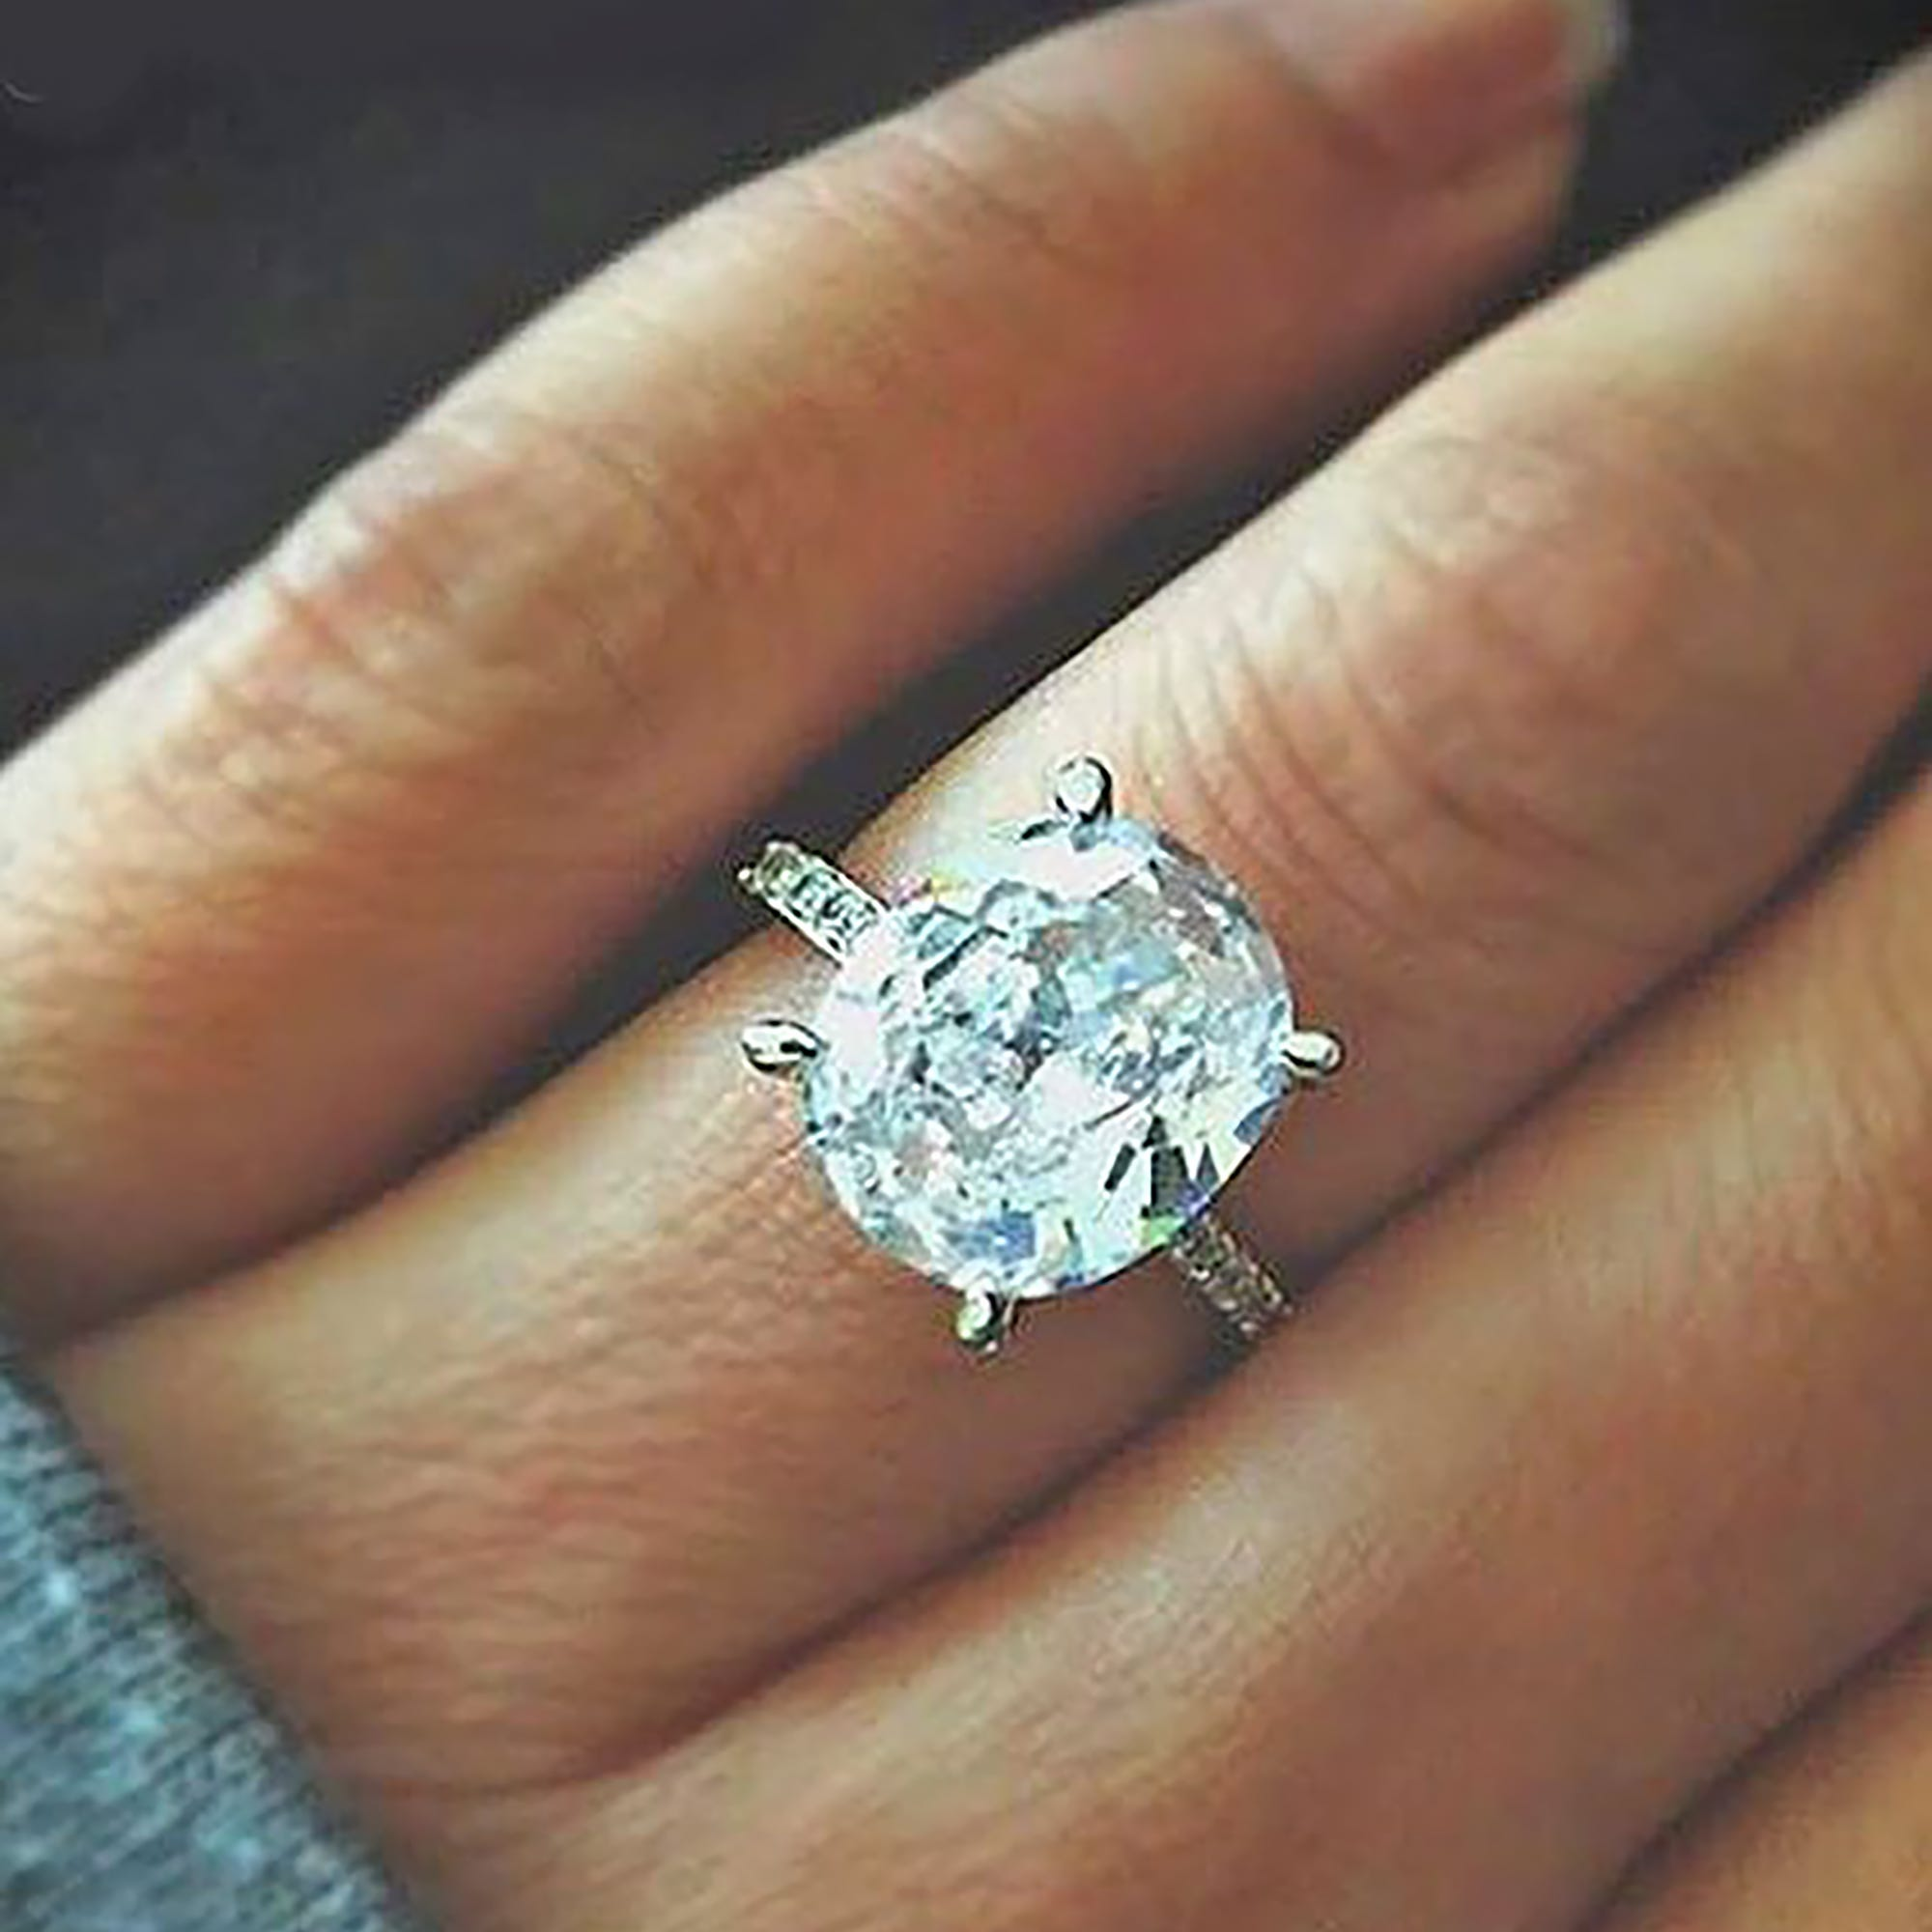 indie adore special gemtalkblog picking with an fashion eye gemstones engagement for i features a super baguette which designers ring unique she halo artfully favorite diamonds and rings cool arranged has diamond